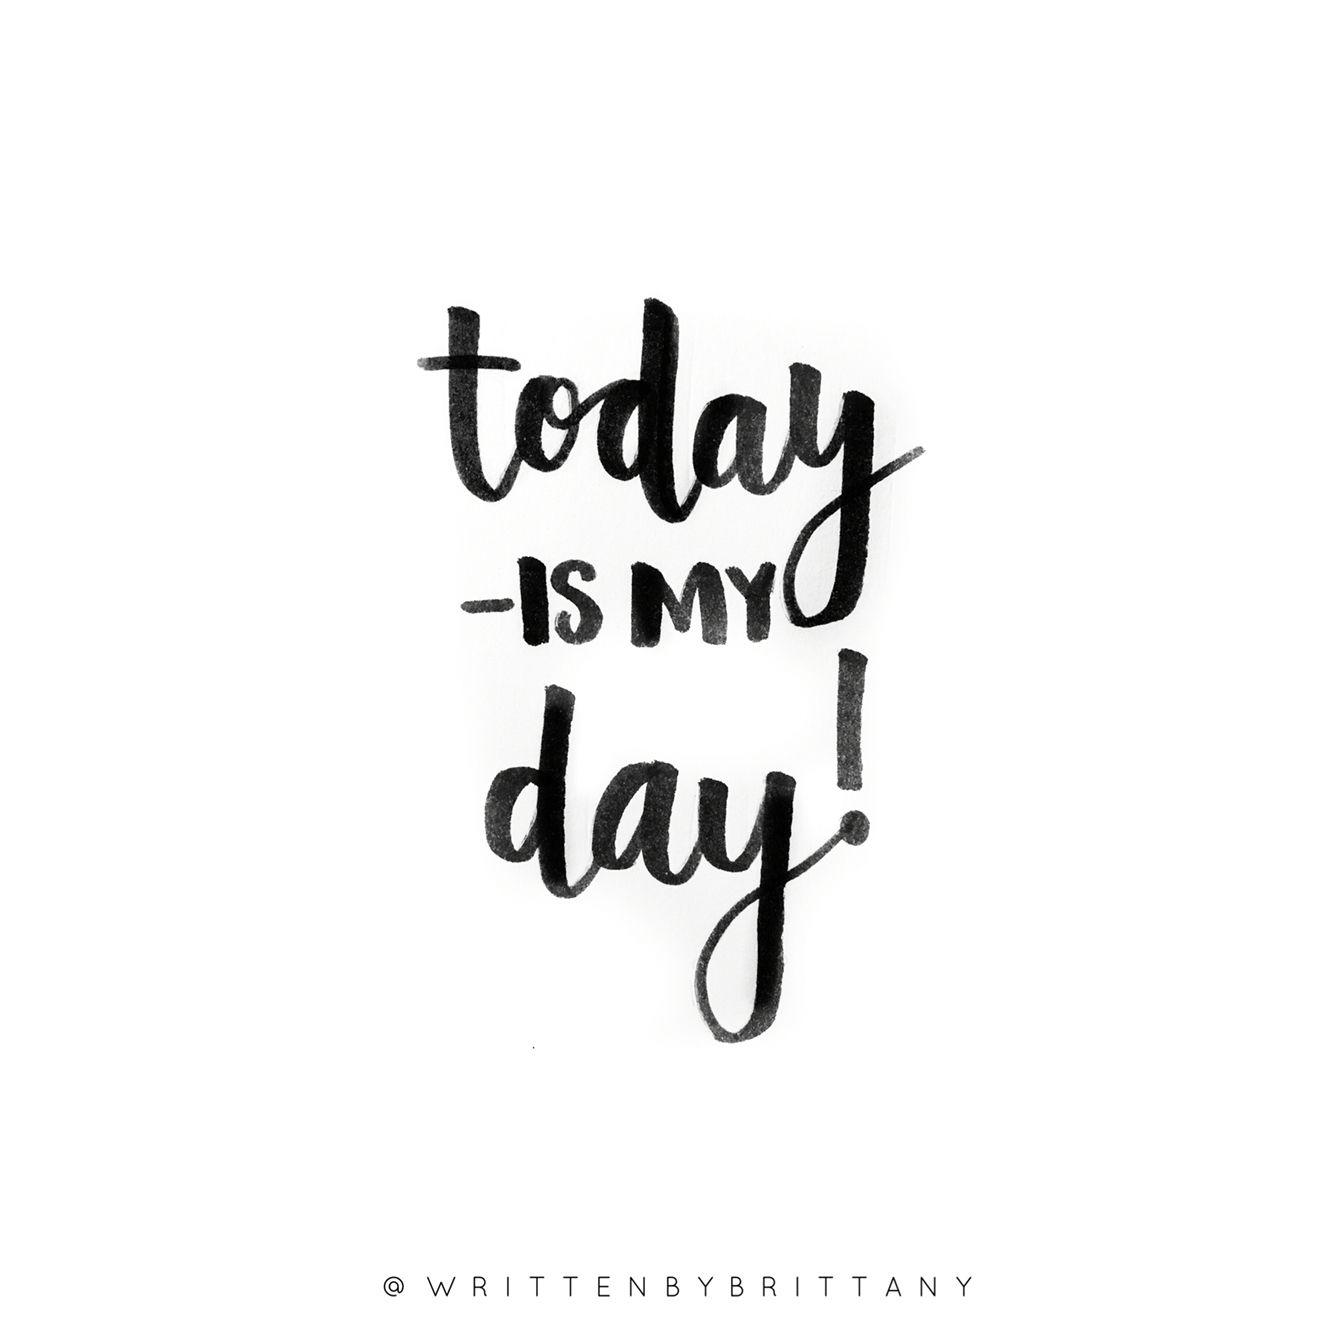 Today is my day!    Hand Lettered Quotes   Calligrahy Quotes   Quote of the day   Brush Lettering   Hand Lettering   Lettering Quotes   Modern Calligraphy   Written by Brittany   Written by Brittany Lettering   Motivational Quotes   Inspirational Quotes   Quotes about happiness